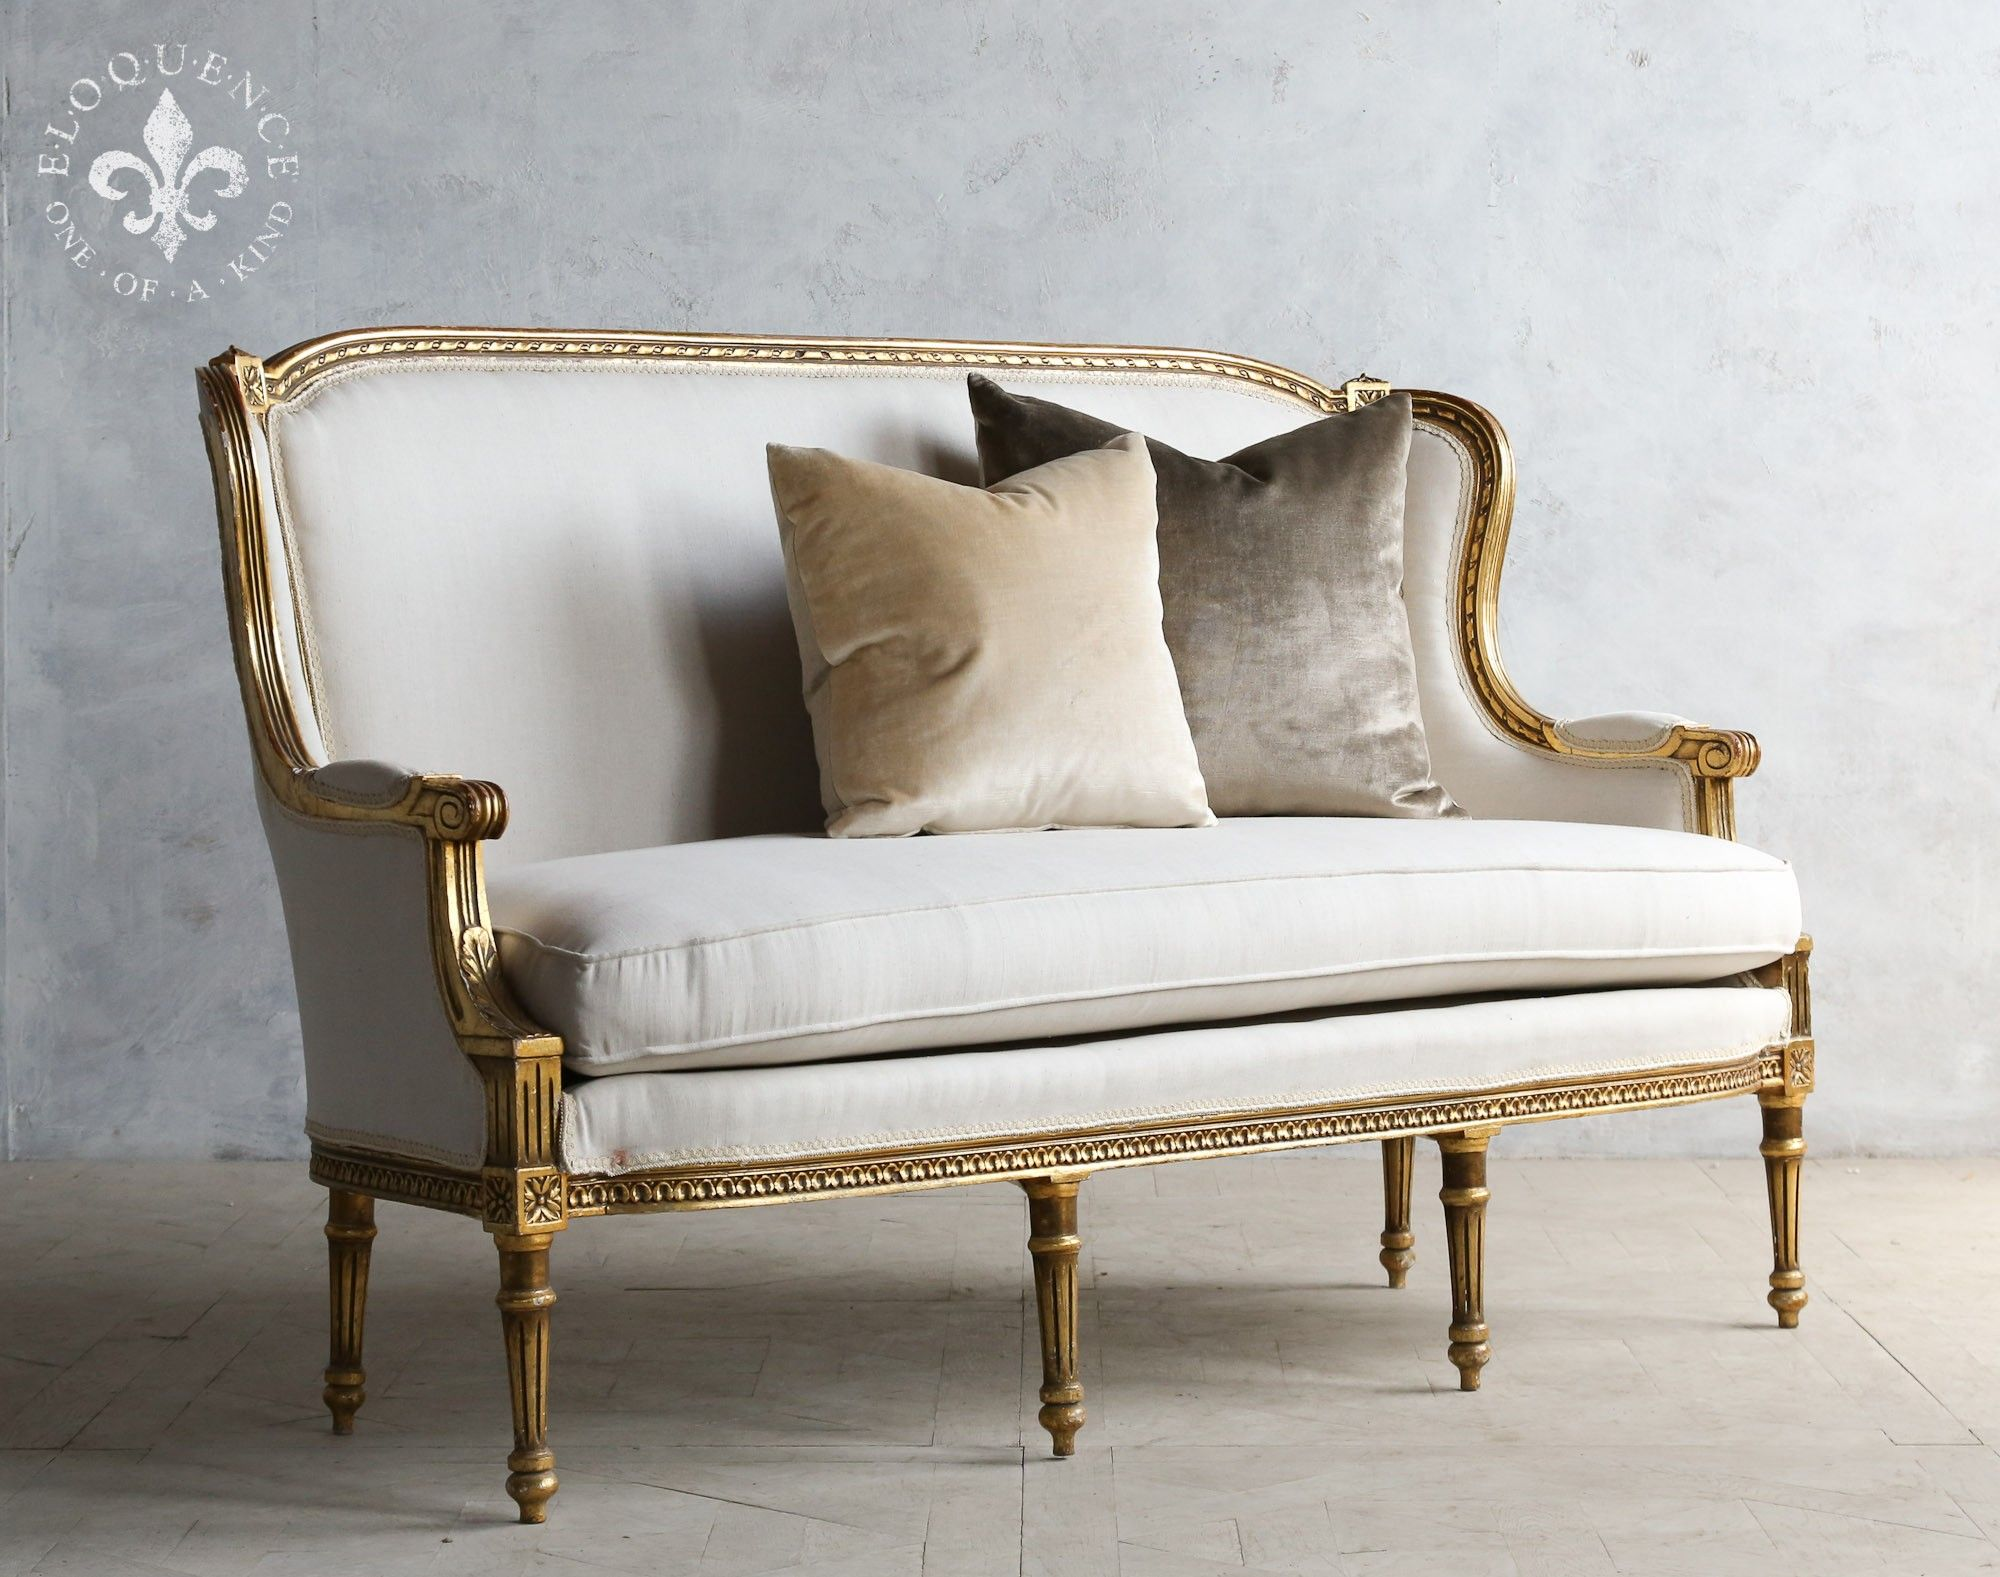 Formal Louis XVI high backed vintage settee with gilt